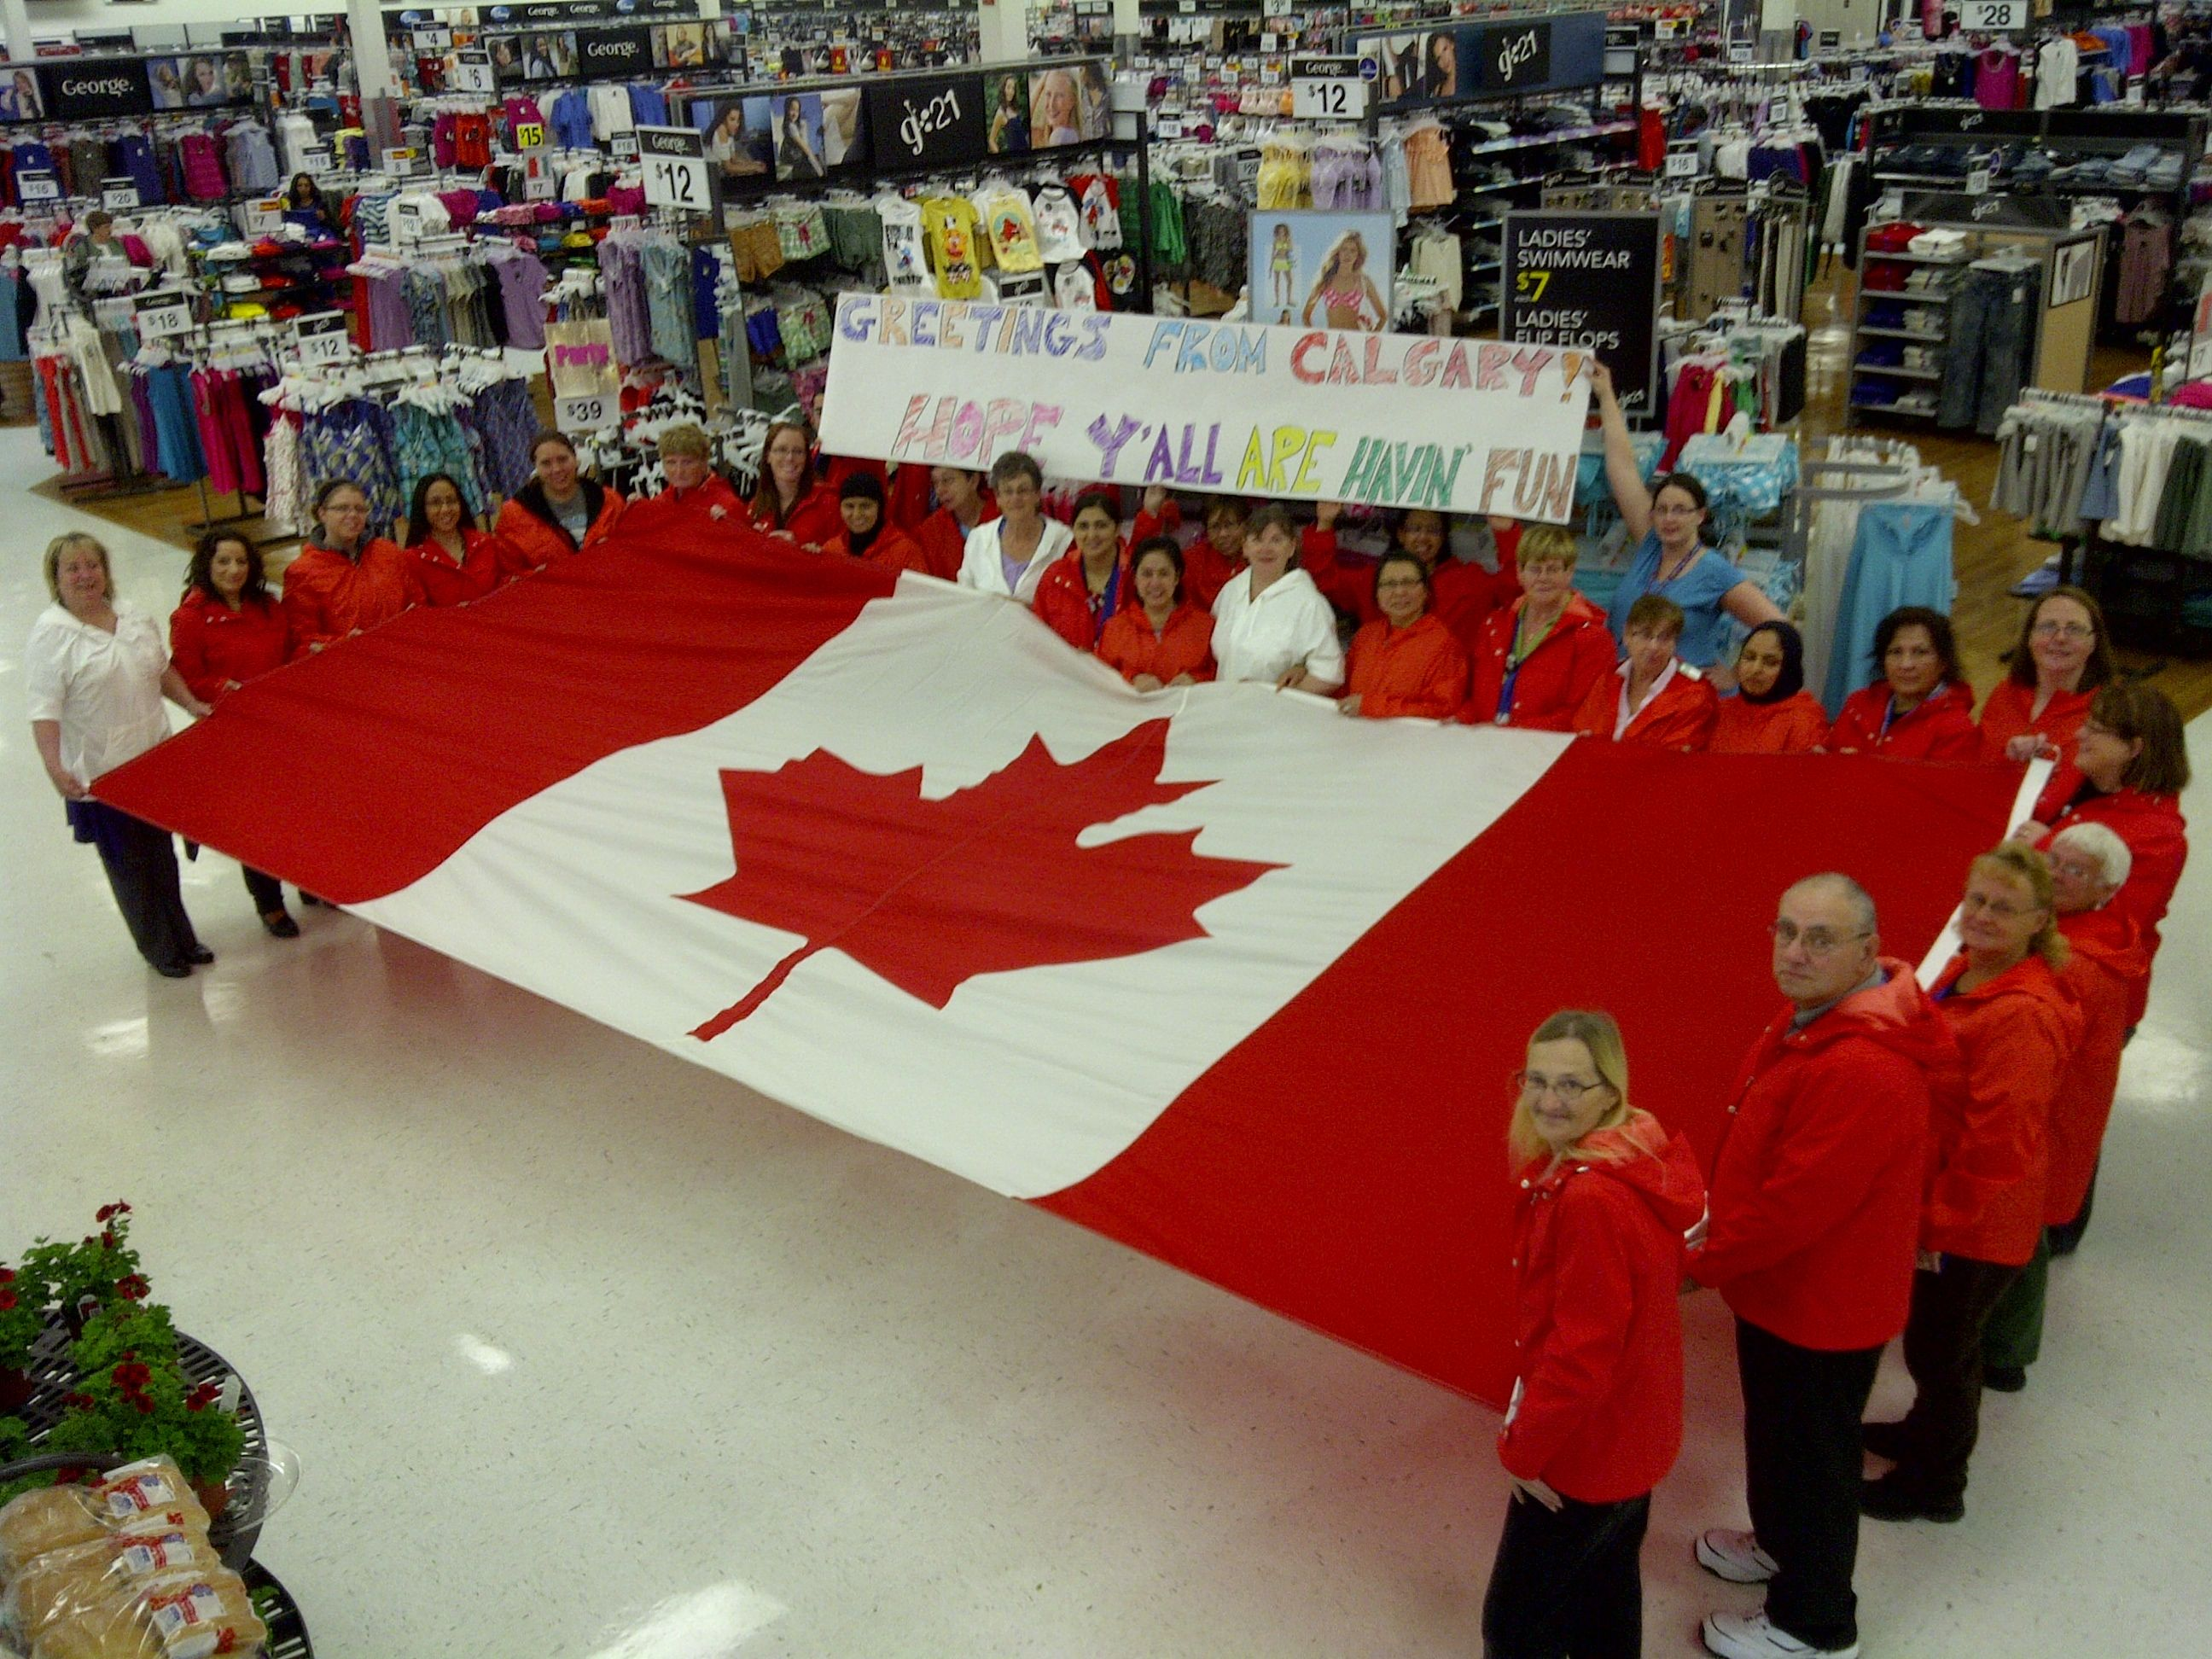 From Store 3012 To All Walmart Delegates Have Fun From Calgary